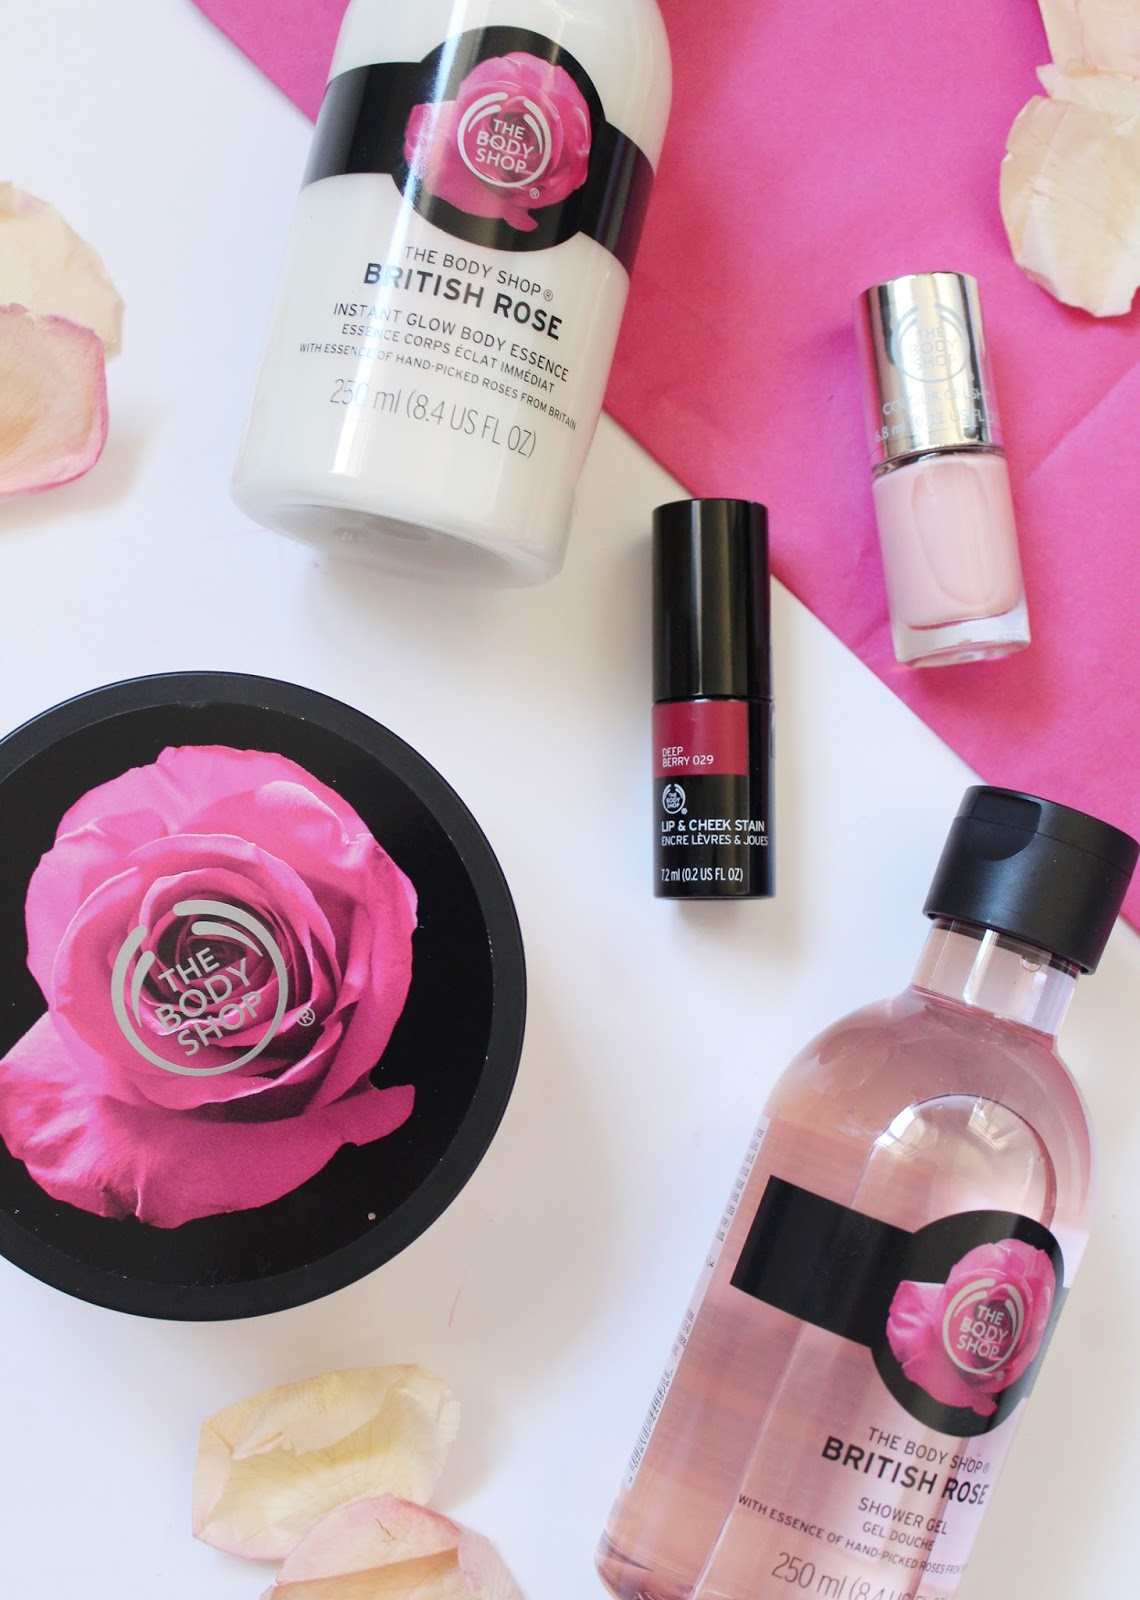 THE BODY SHOP | British Rose Collection - Review + Swatches - CassandraMyee